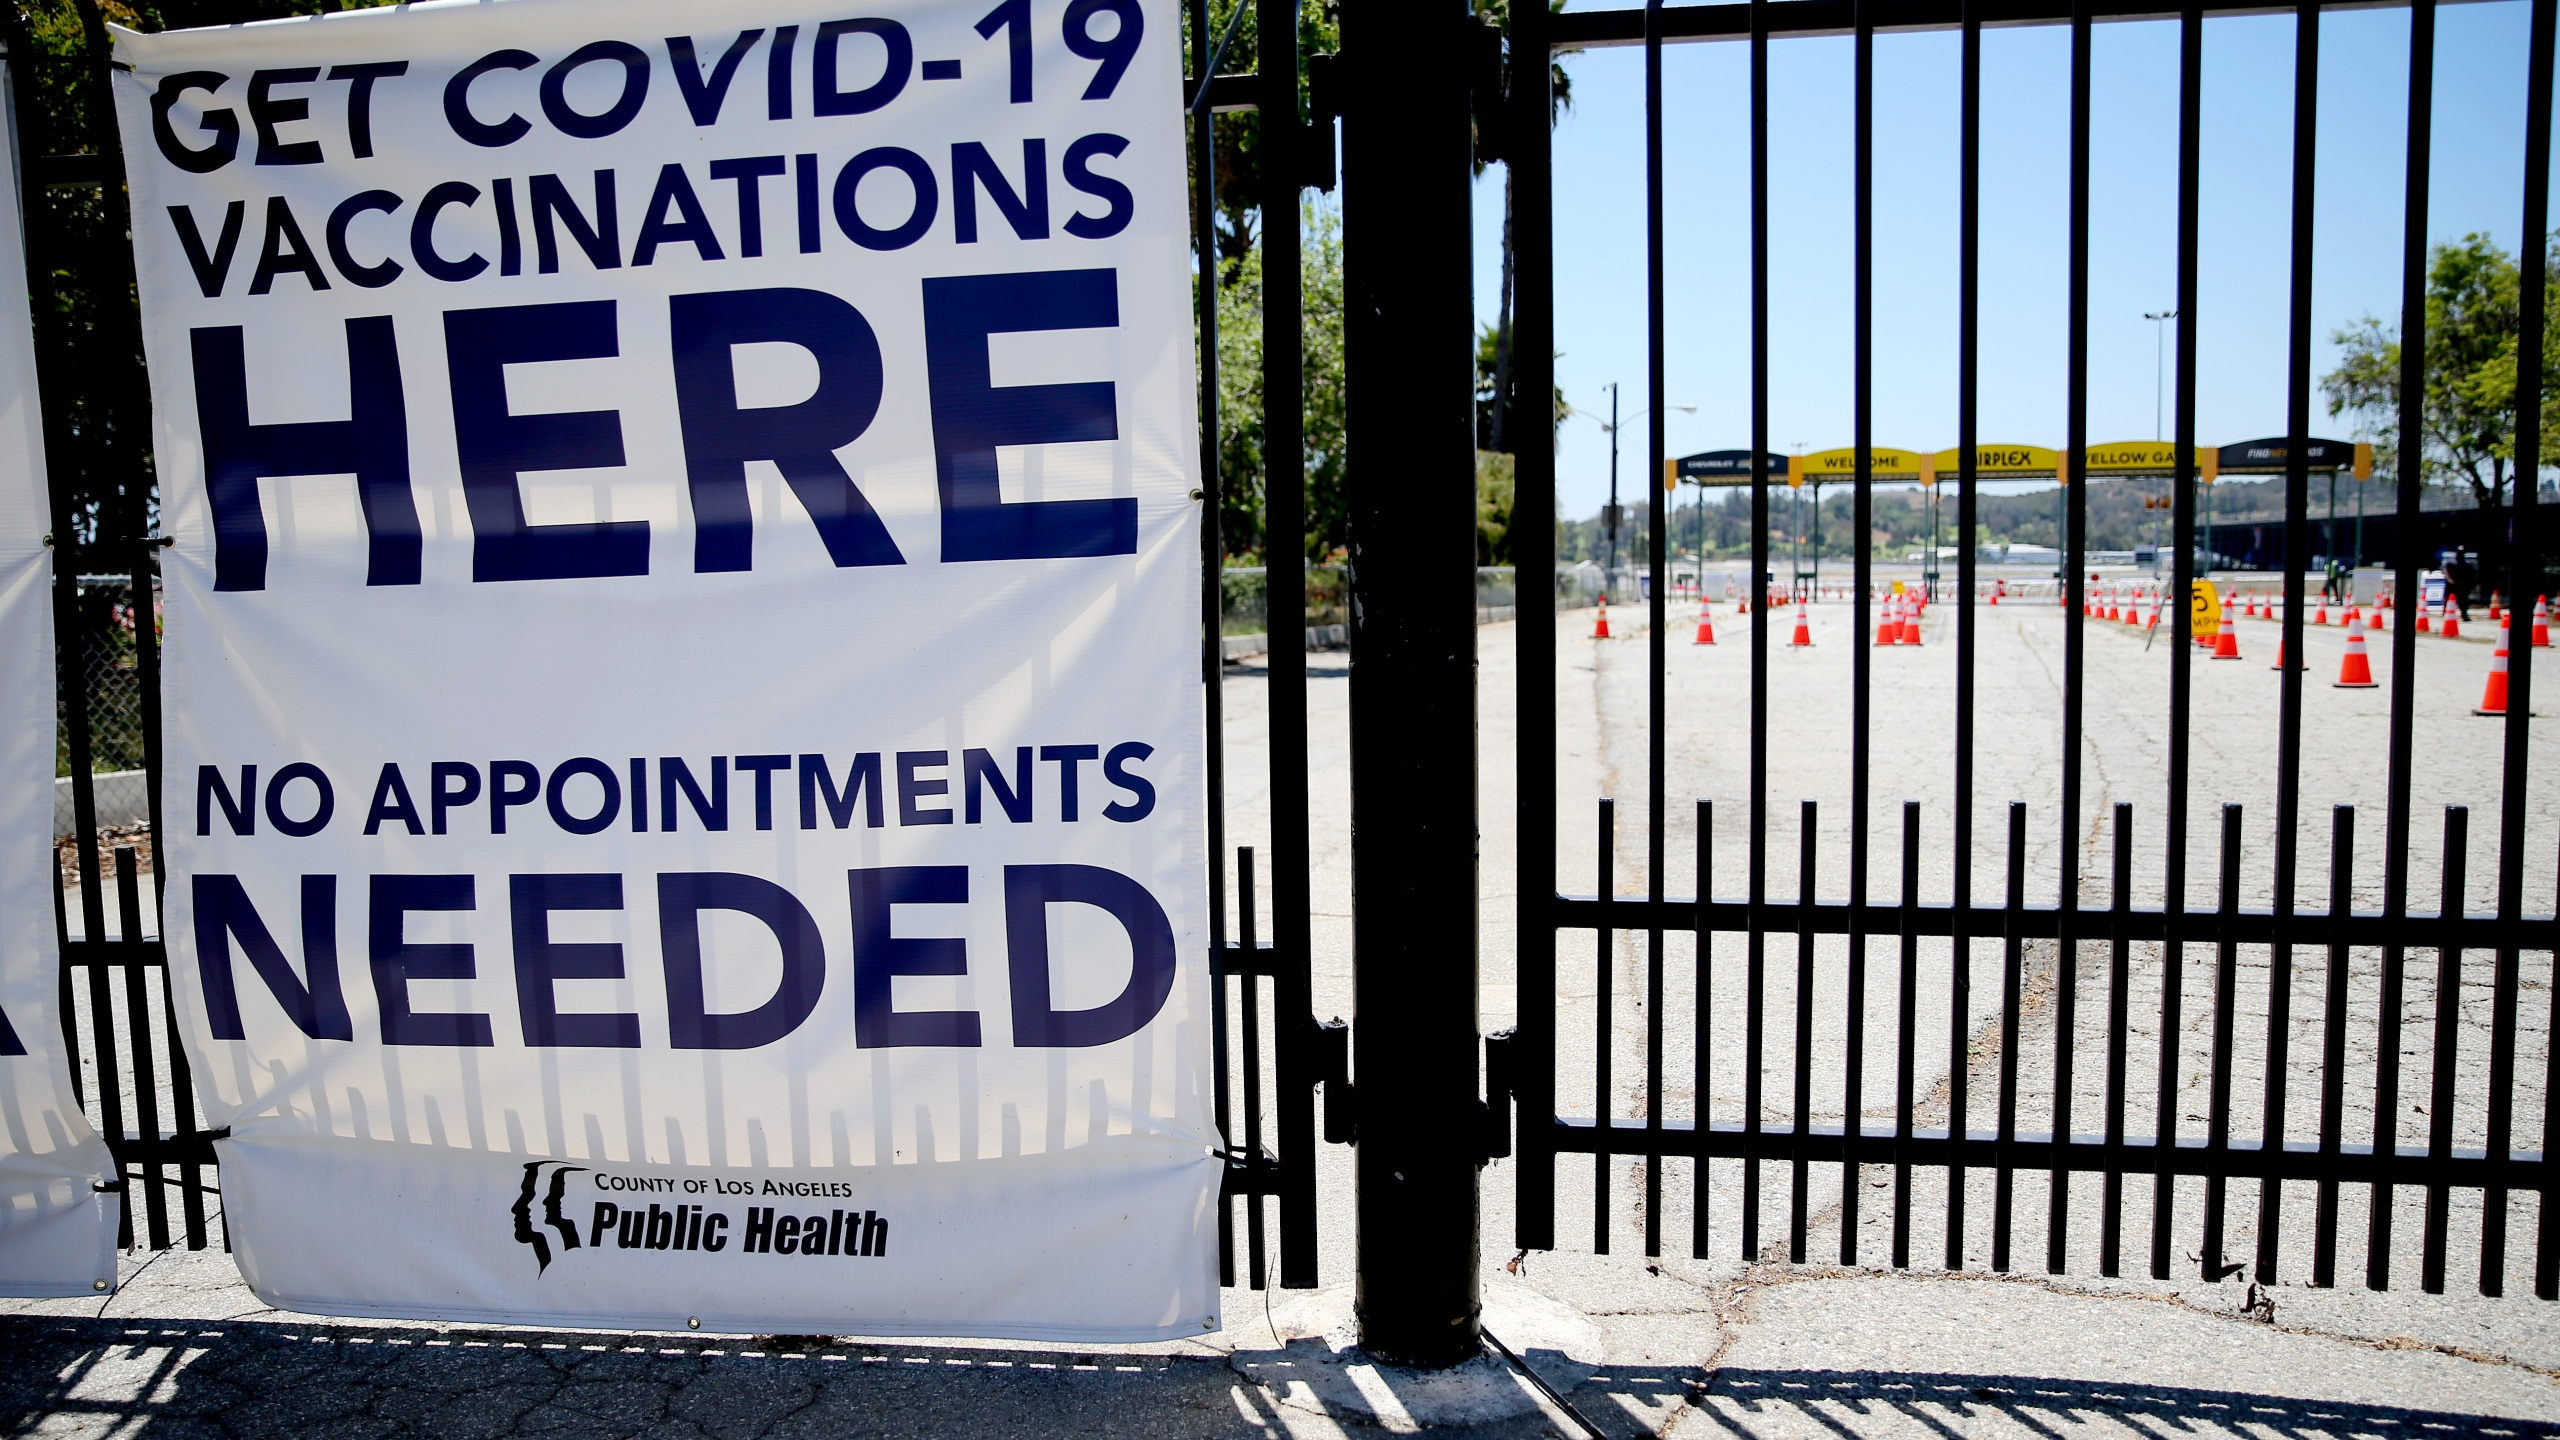 A sign promotes a nearly empty mass vaccination site at the Pomona Fairplex on June 10, 2021 in Pomona, California. (Mario Tama/Getty Images)